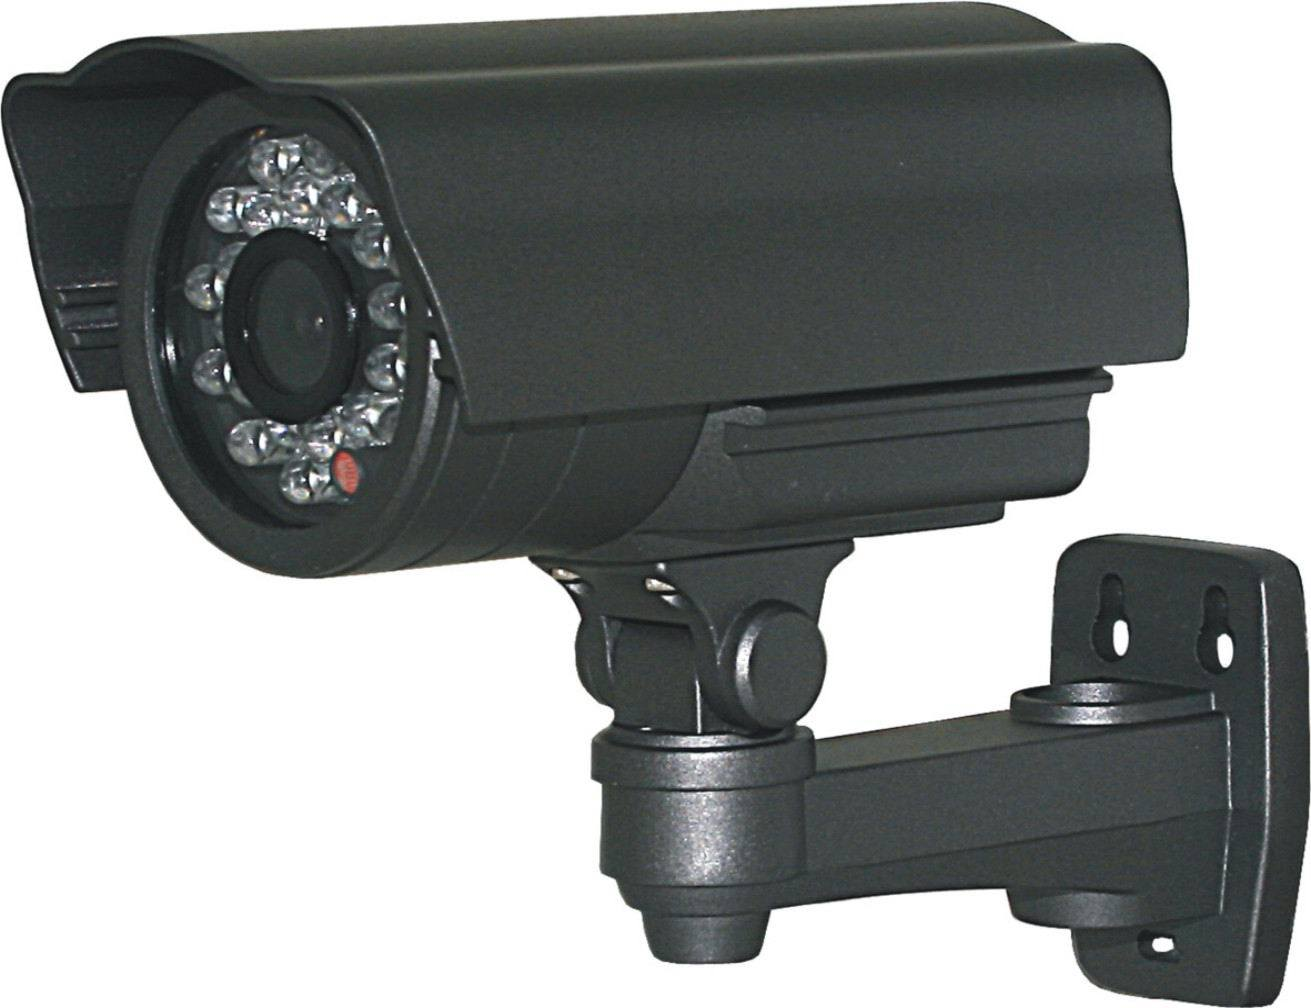 Image gallery outdoor camera - Exterior surveillance cameras for home ...